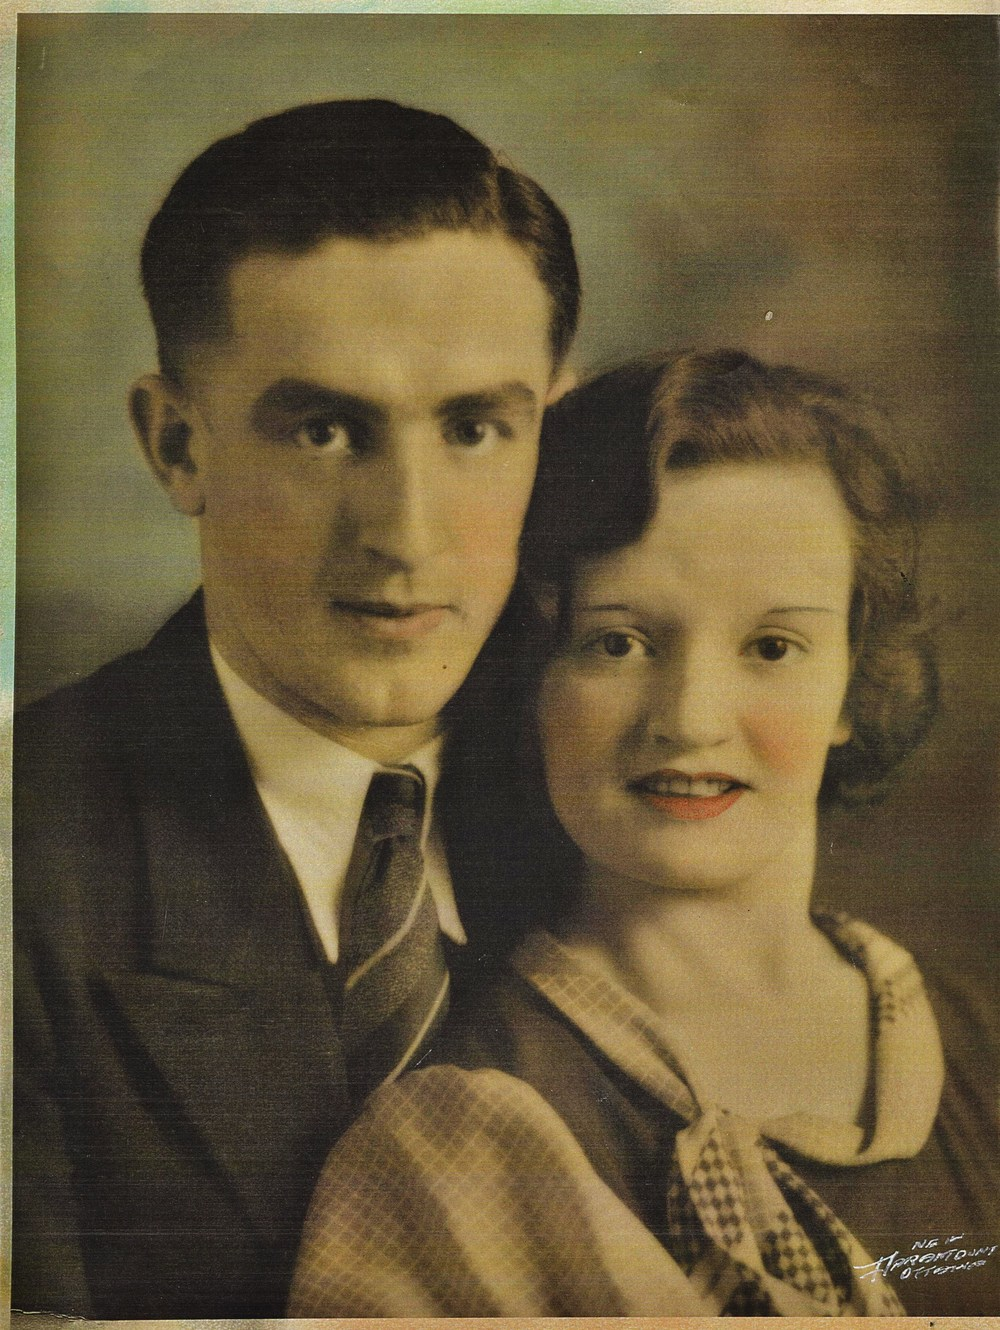 Projectionist George Mantle with wife Ivy